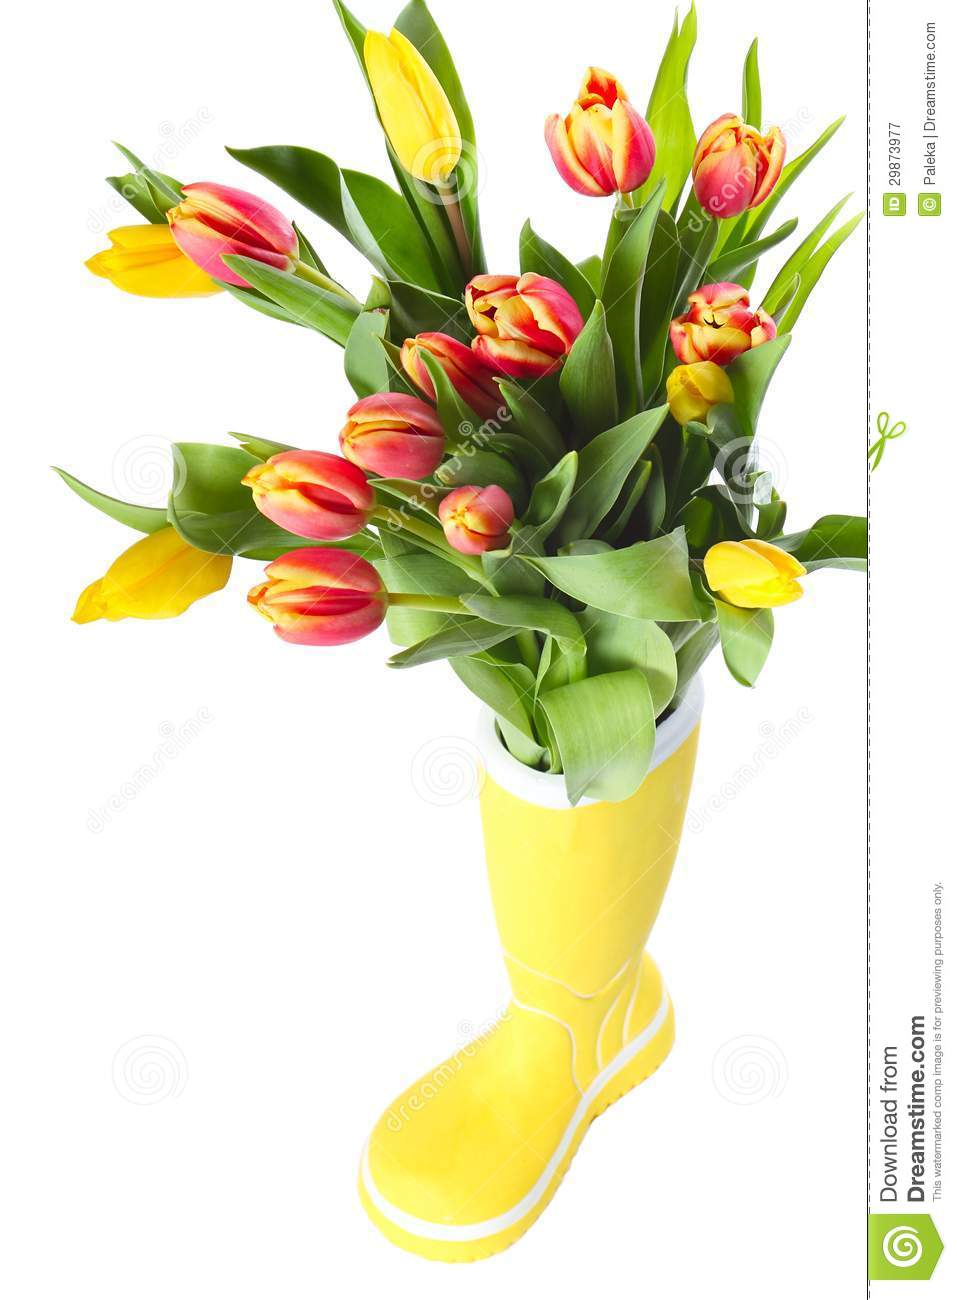 Boot with tulips stock image image of nature garden 29873977 royalty free stock photo reviewsmspy